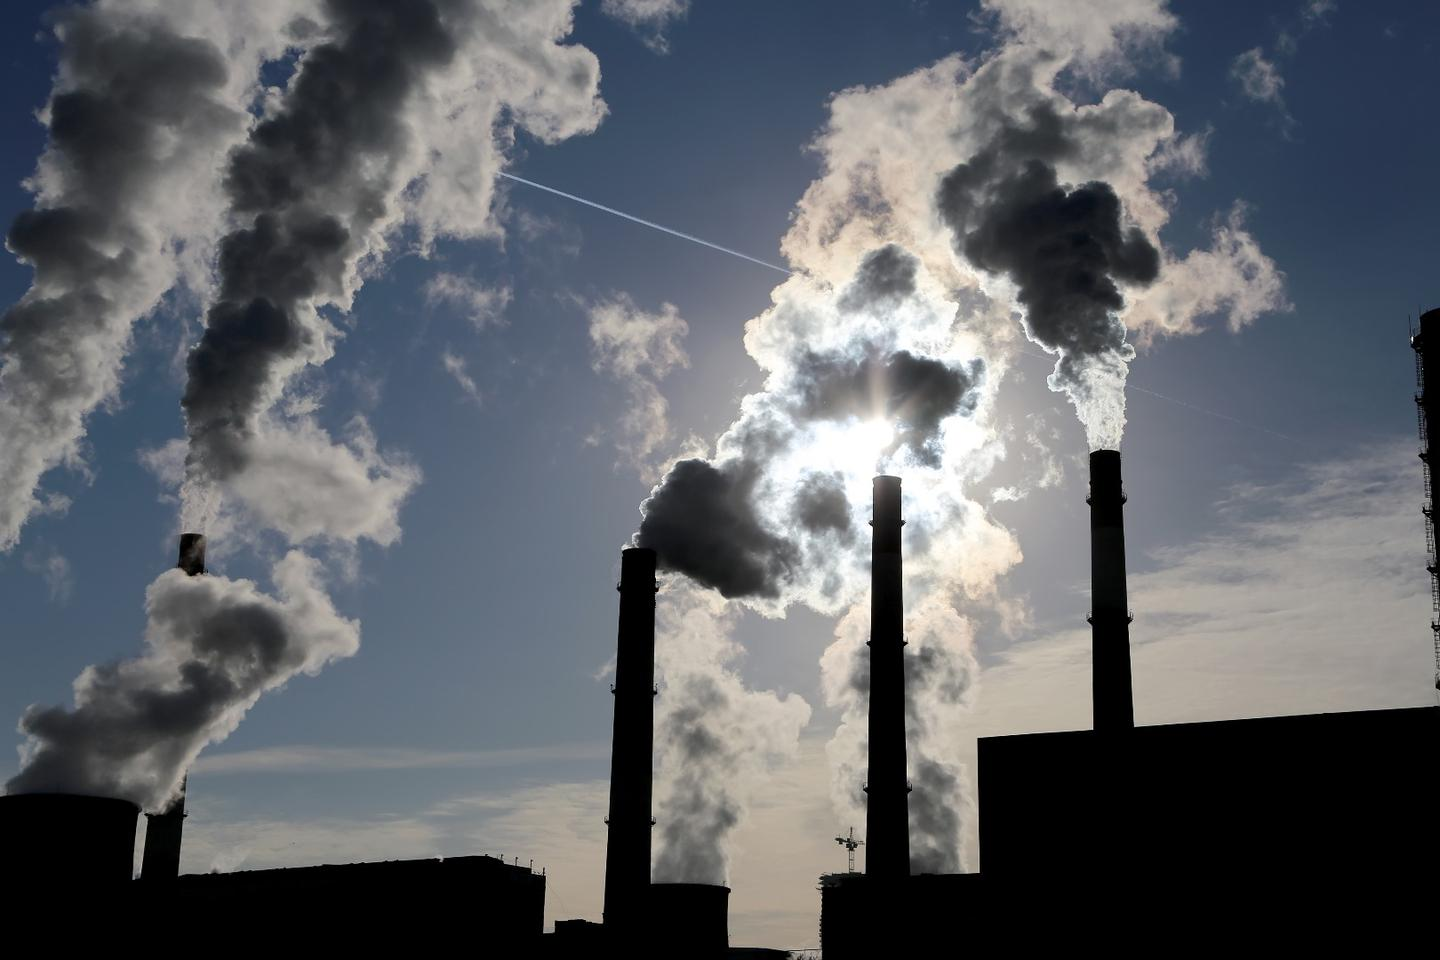 The authors report a record number of coal plant retirements in the last two years